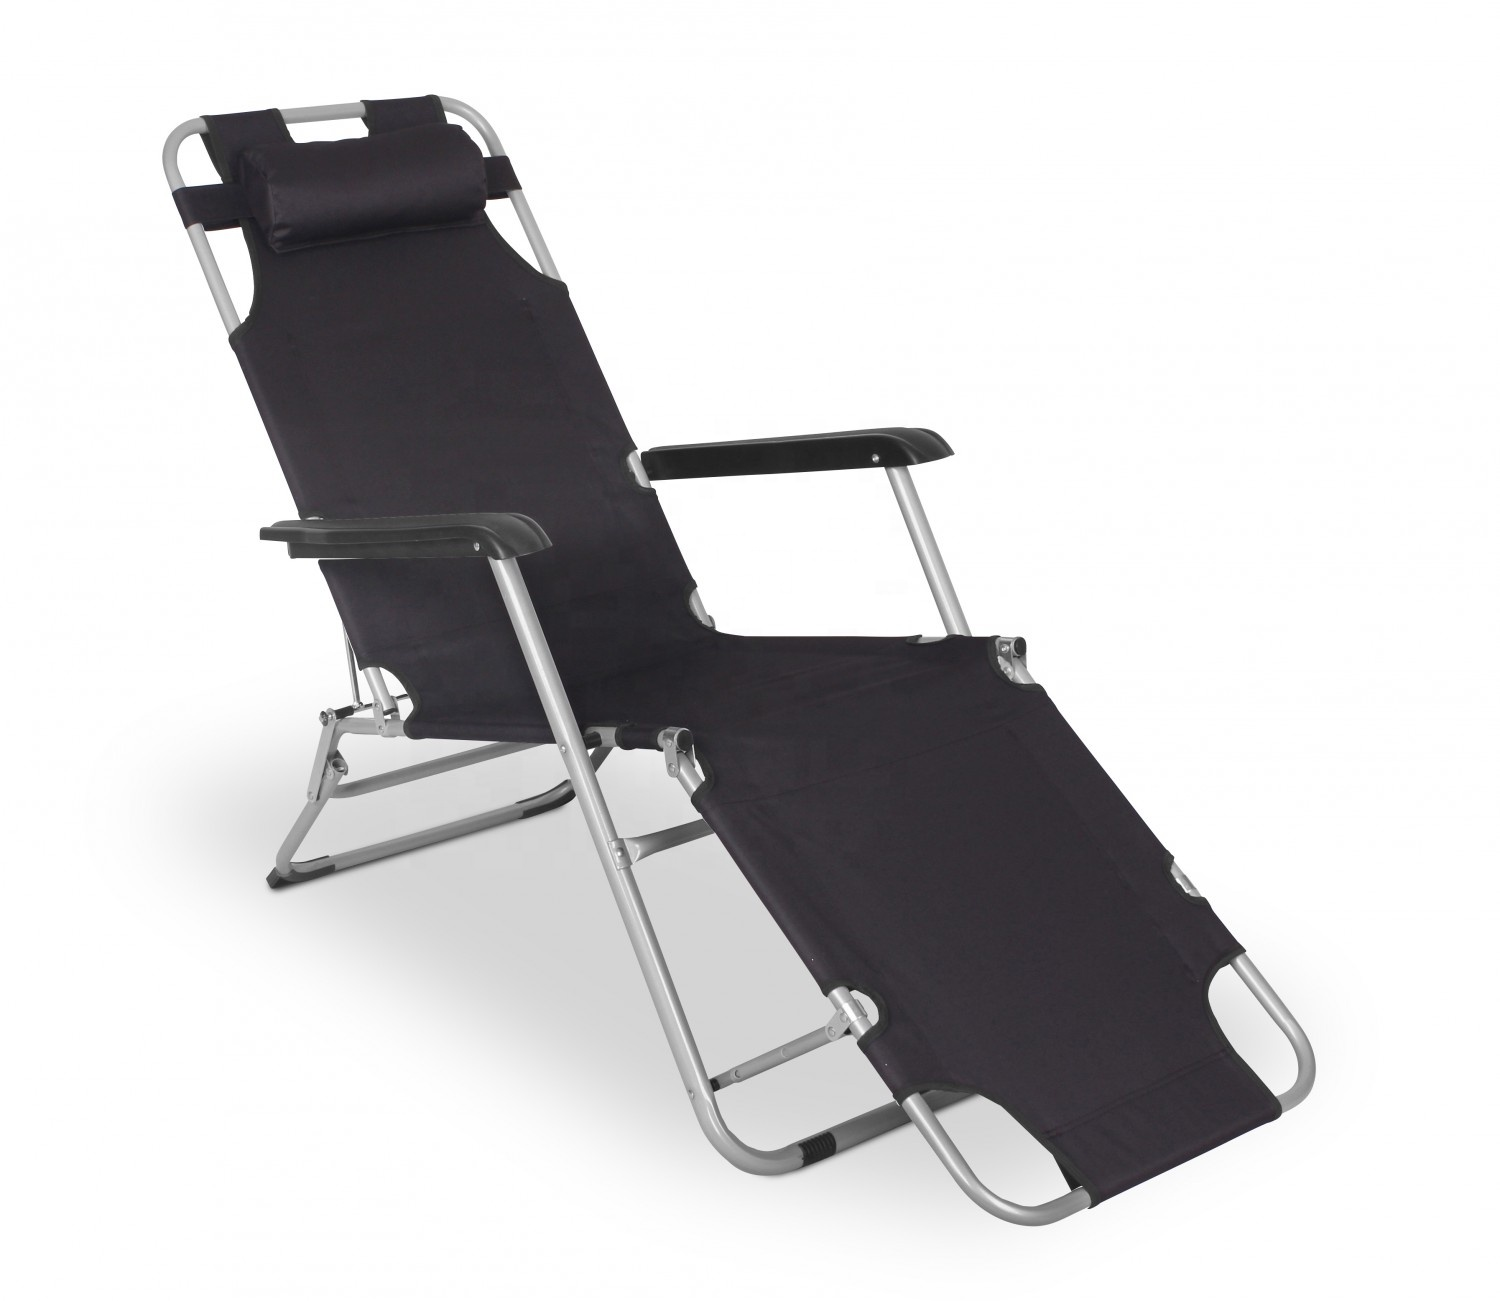 Oversize outdoor folding reclining metal zero gravity chair with cup holder